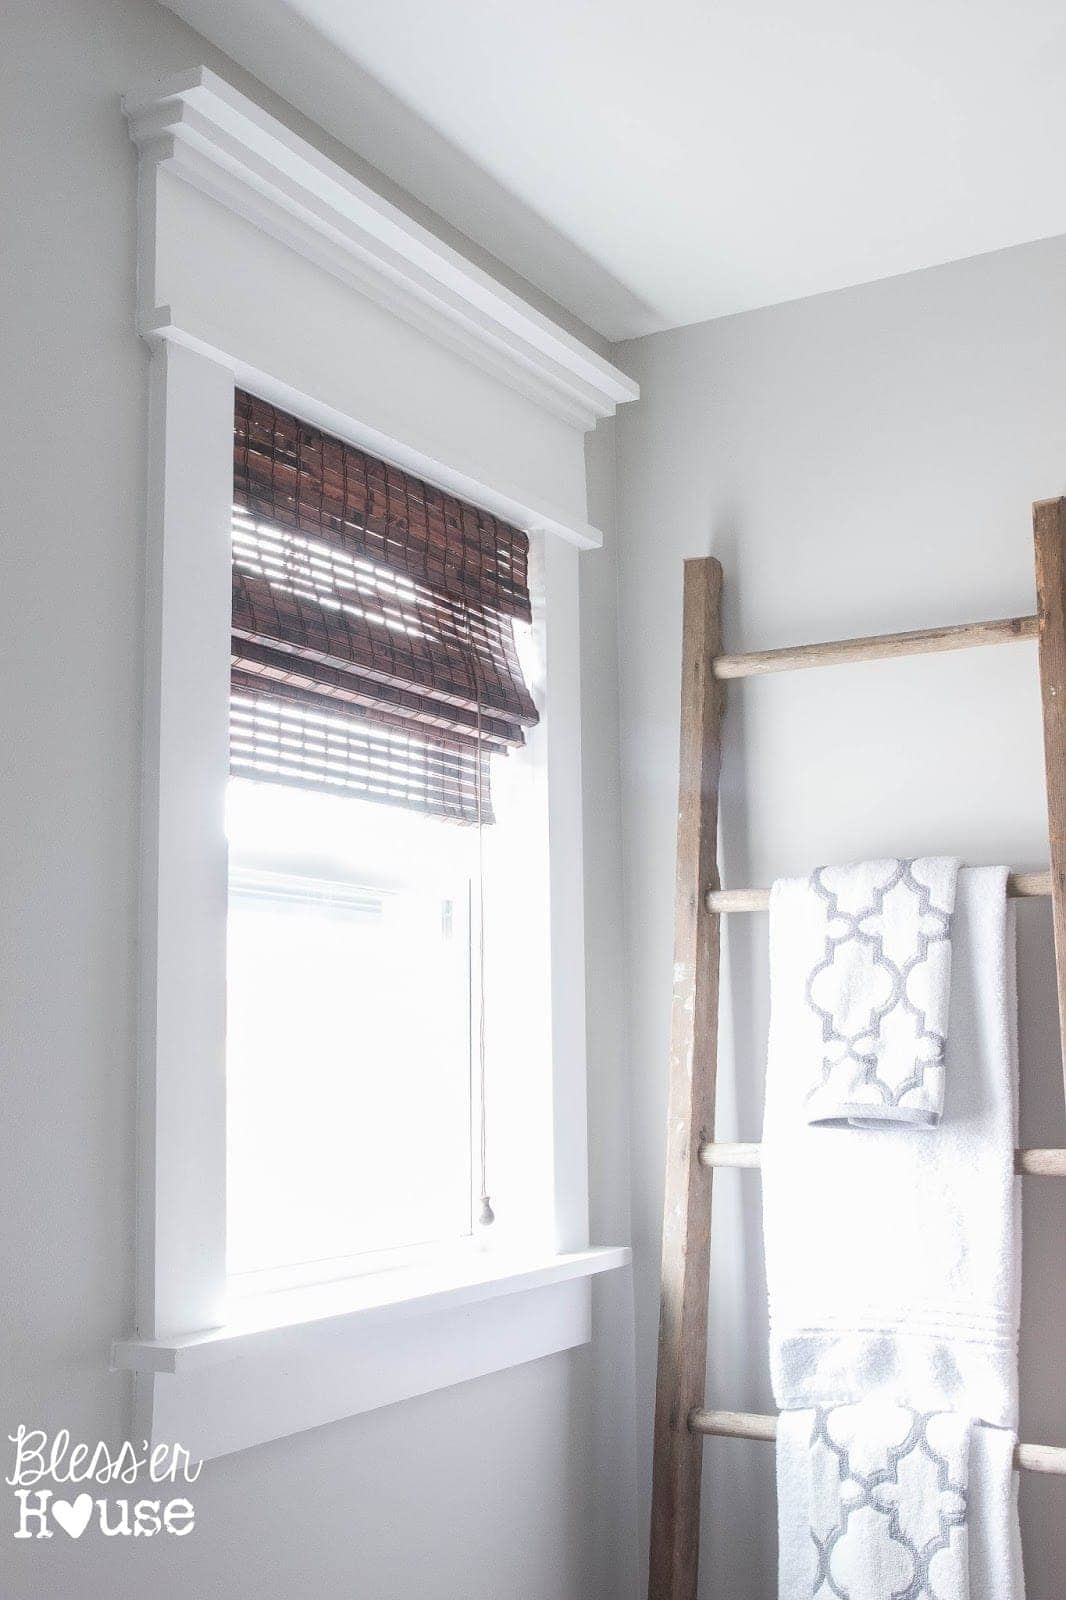 2 Simple Steps to Upgrade a Basic Window - Bless'er House